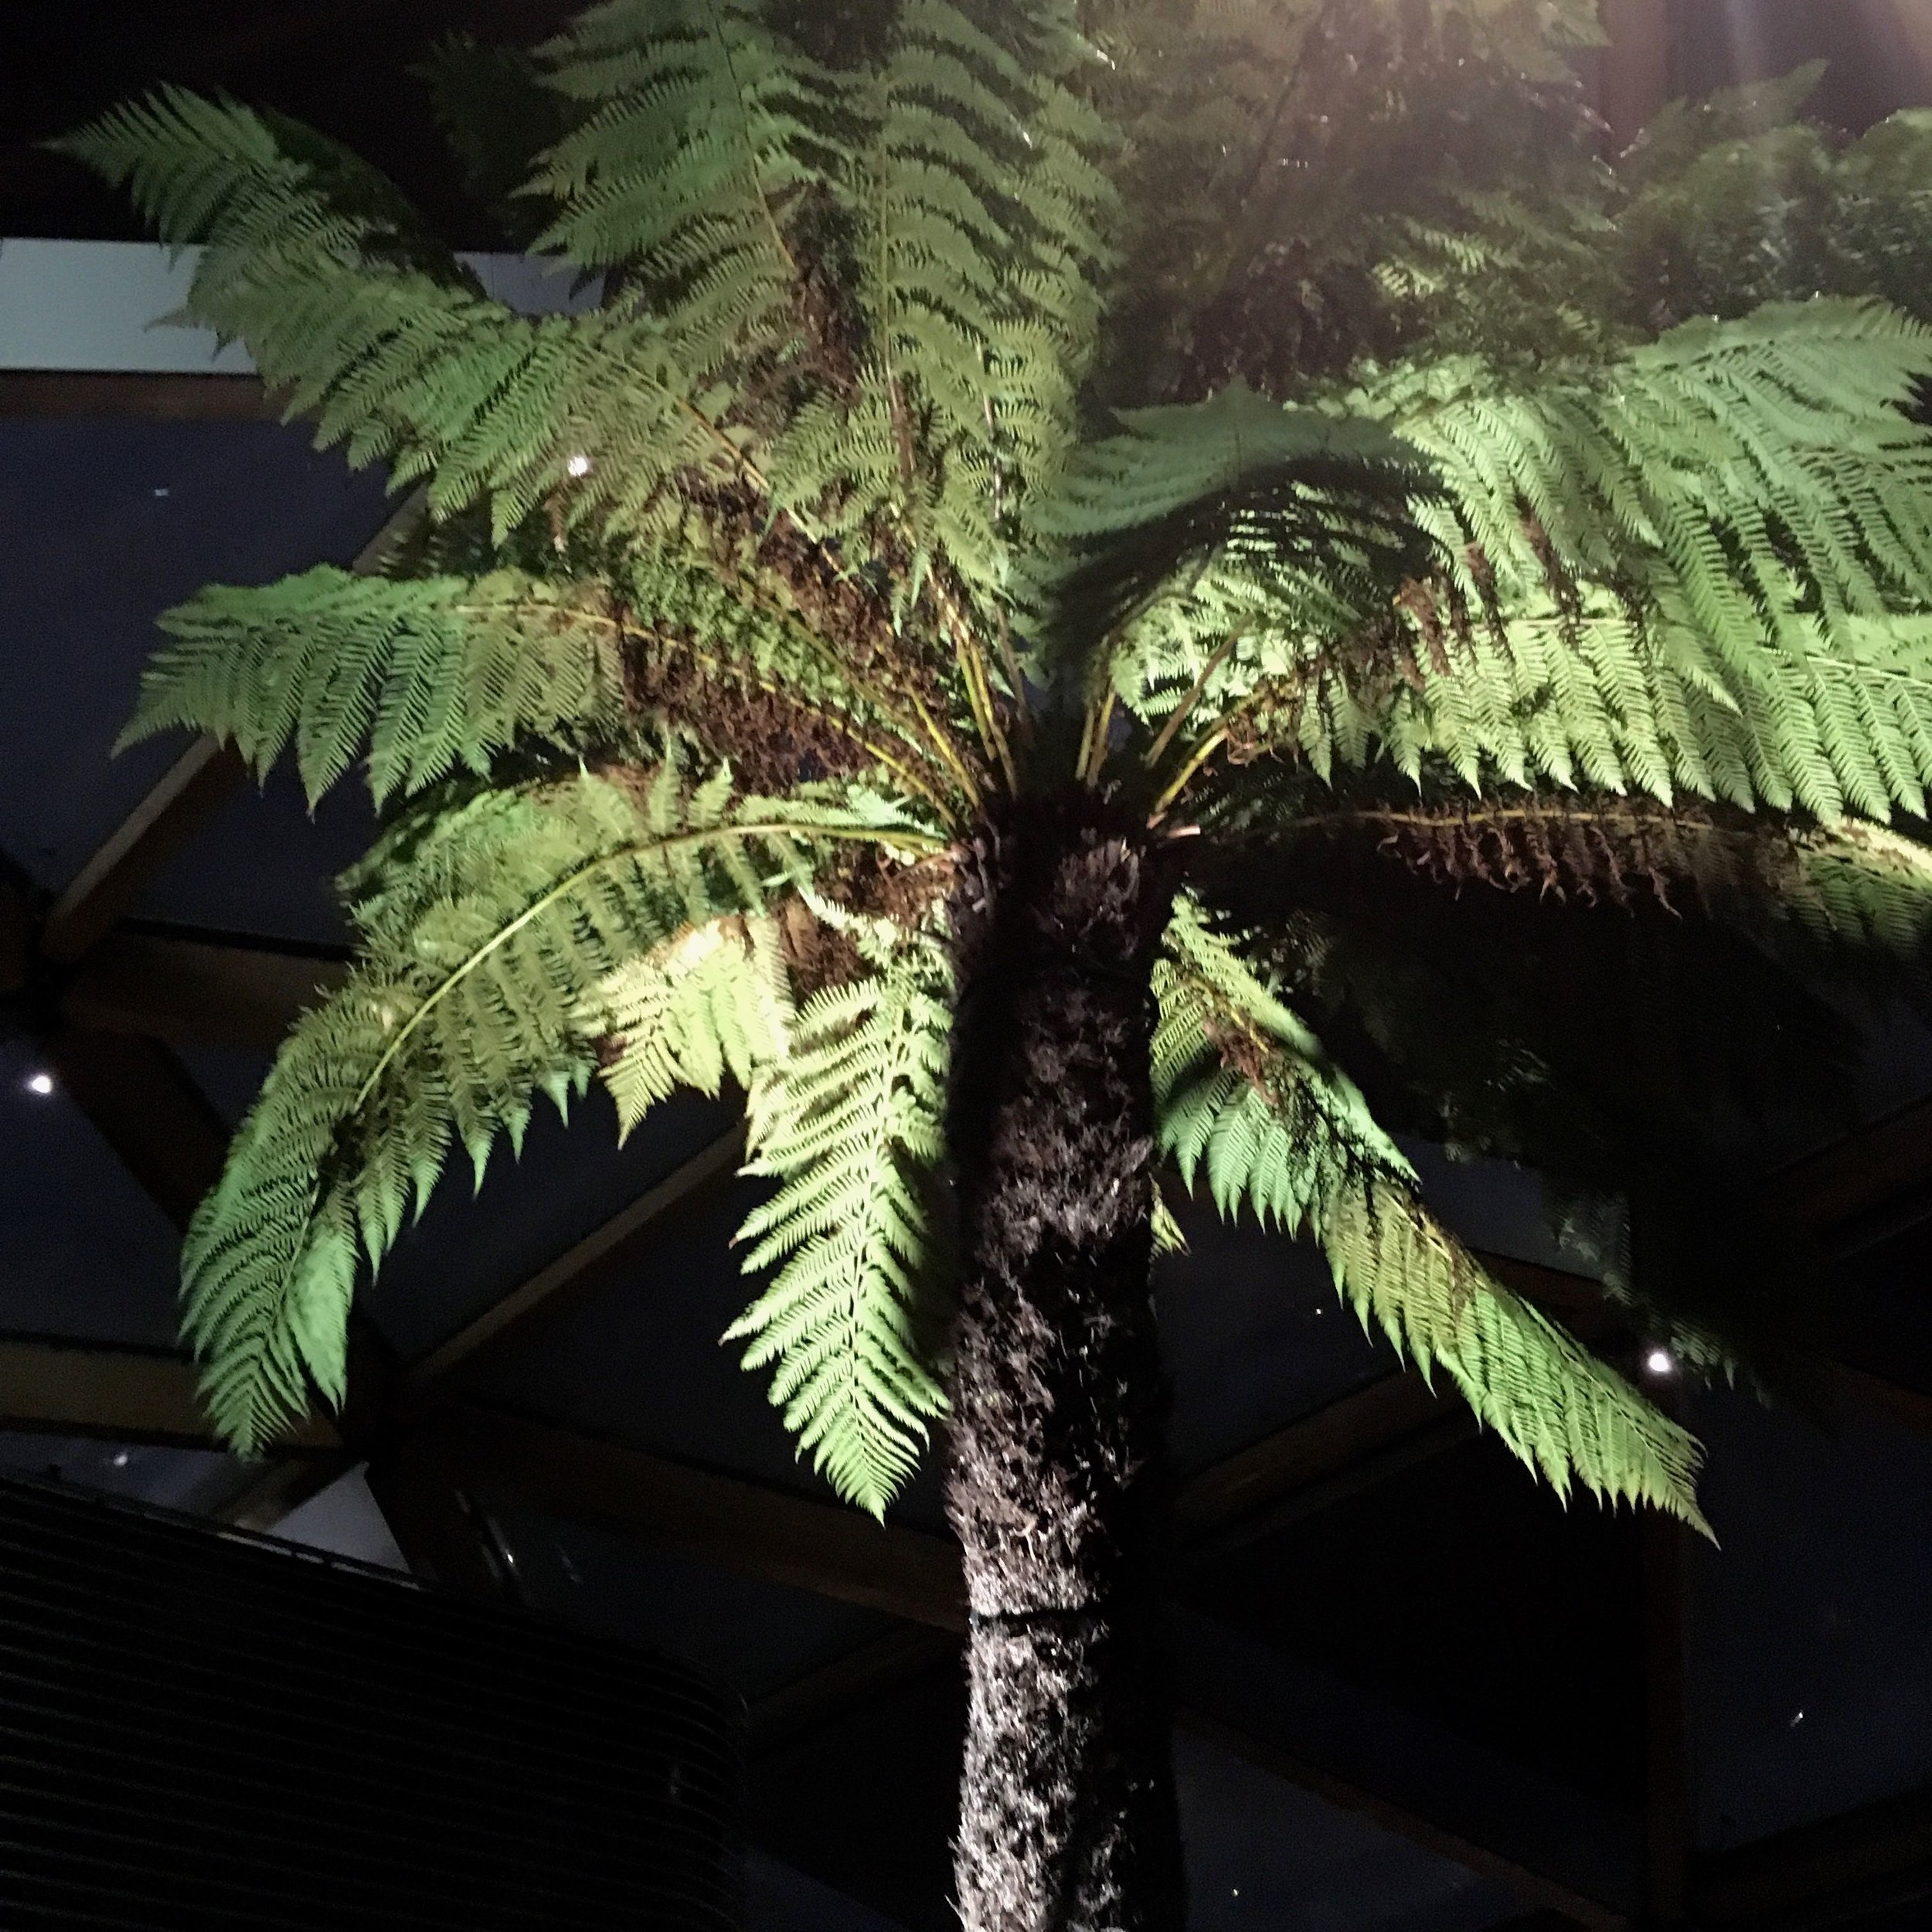 Tree fern in the roof garden in crossrail place in Canary Wharf